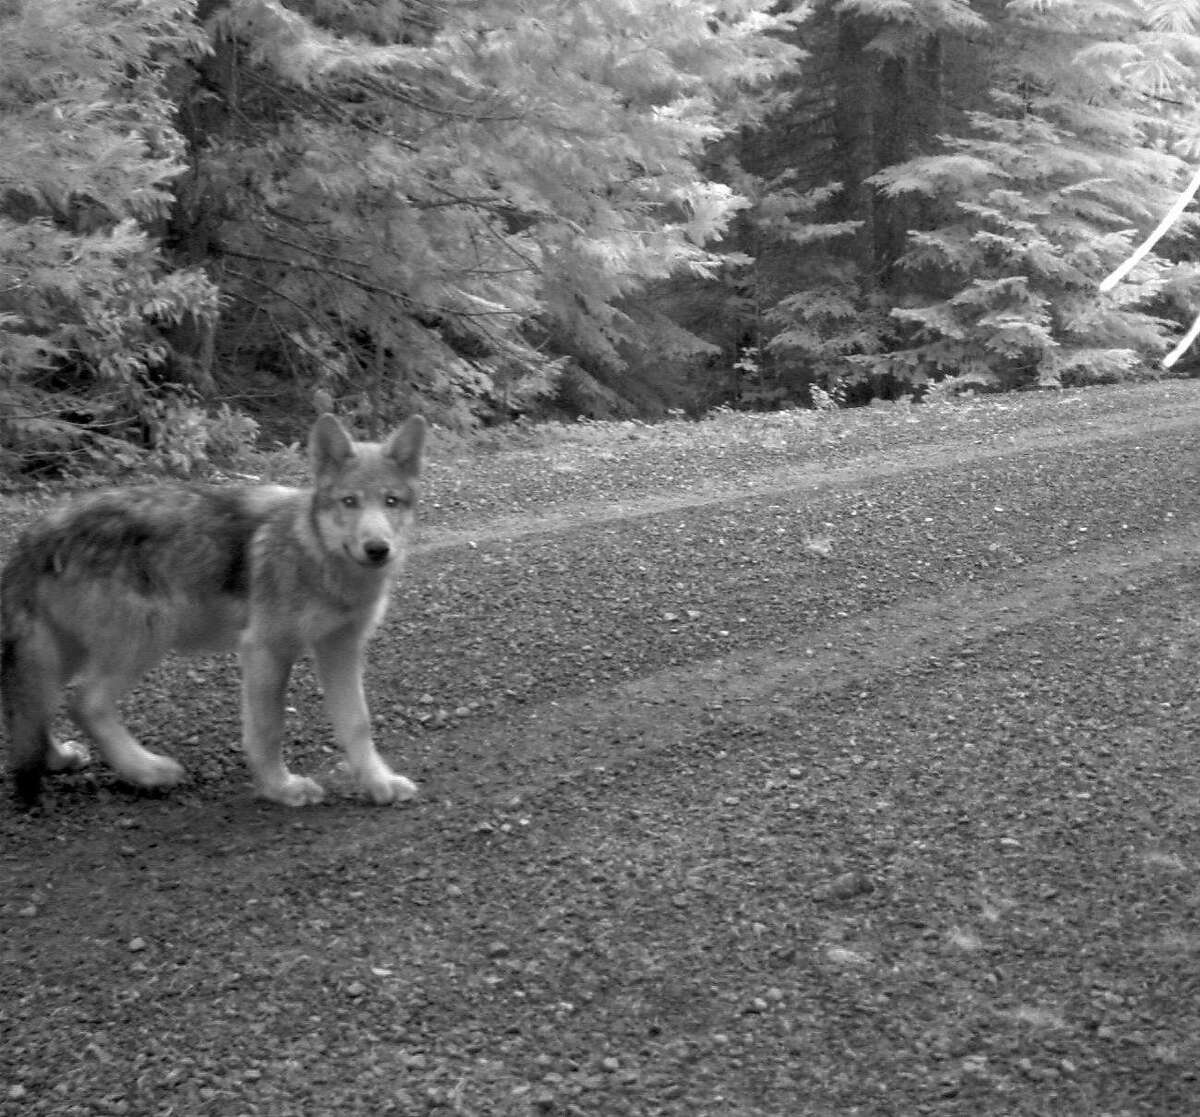 This July 12, 2014 image released by the U.S. Fish and Wildlife Service shows what is believed to be a pup of OR-7 seen in a screen grab from a remote trail camera in Rogue River-Siskiyou National Forest, Ore.